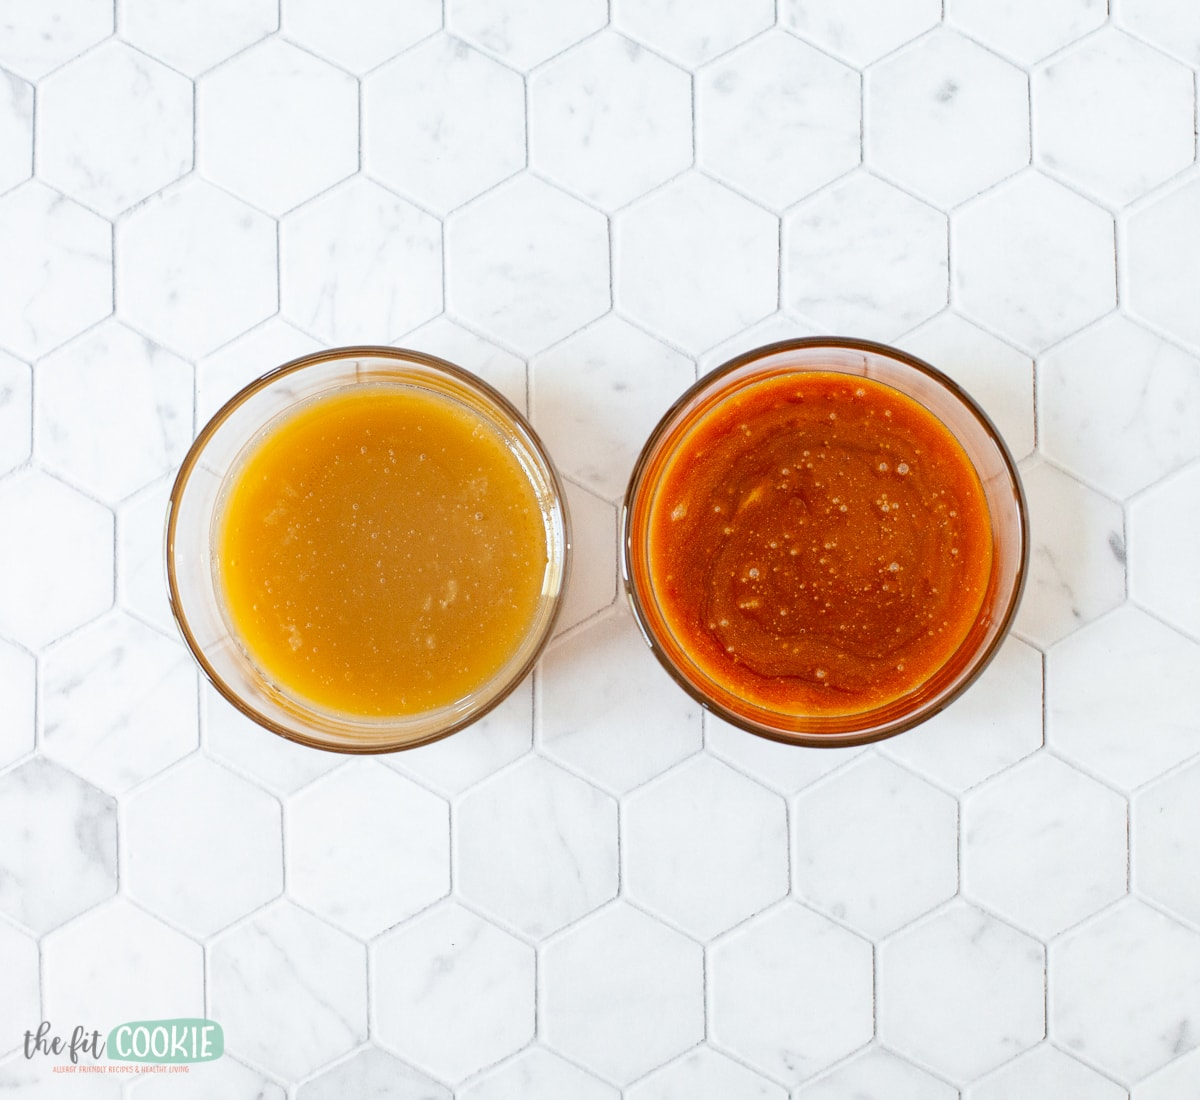 2 glass dishes of caramel sauce. Comparison between 2 types of dairy free caramel.